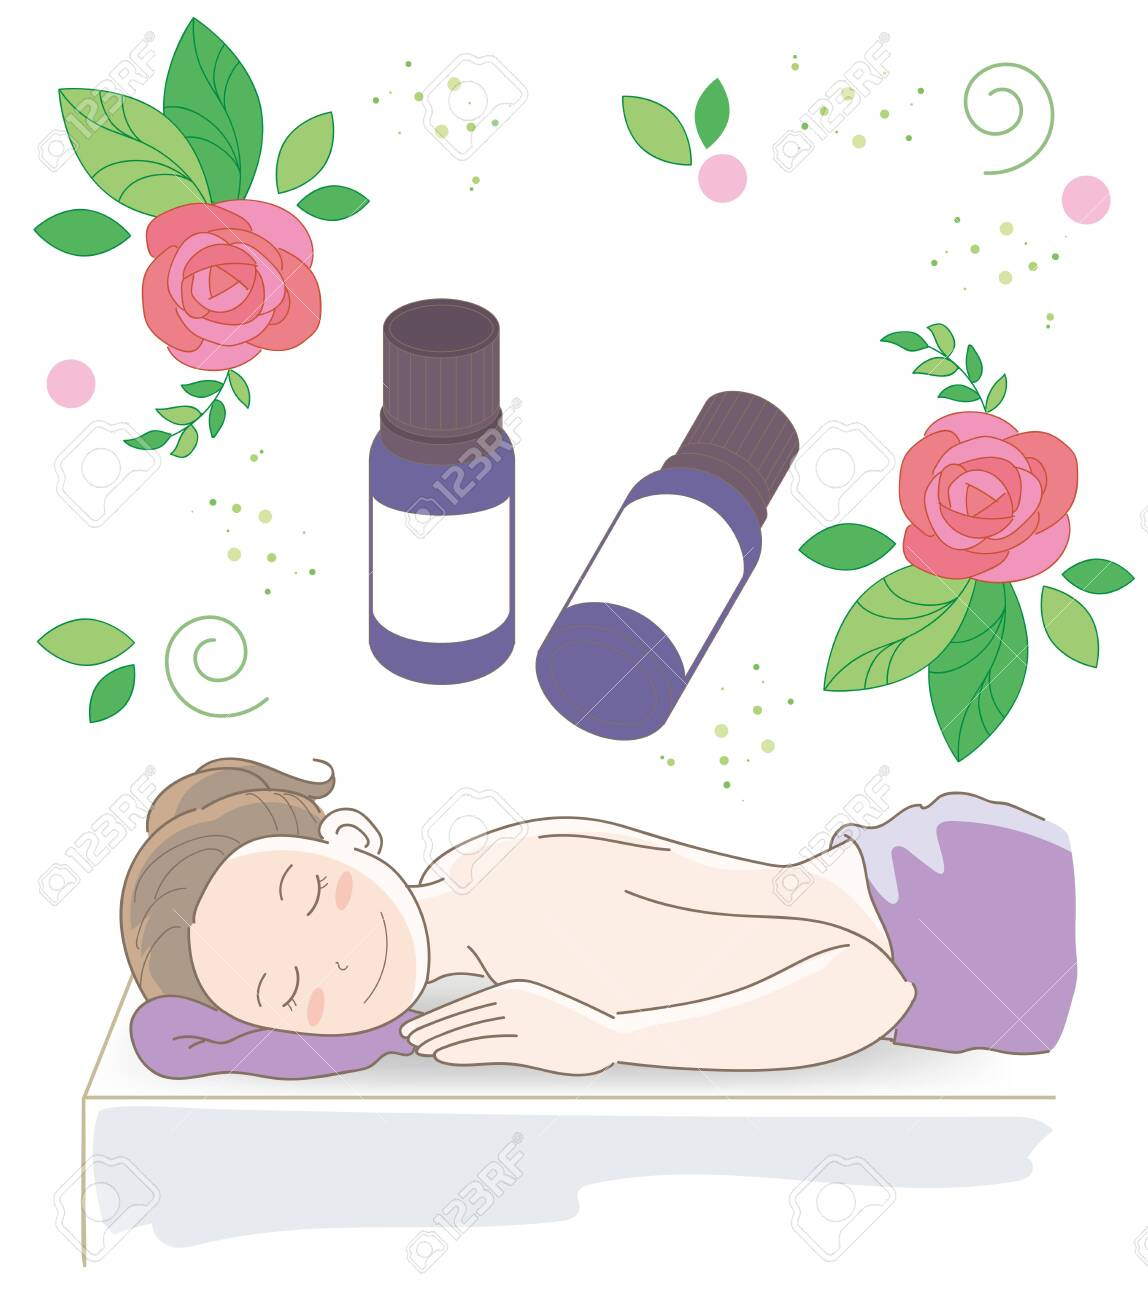 Aroma oil and small bottles - Massage image with rose - 126644091